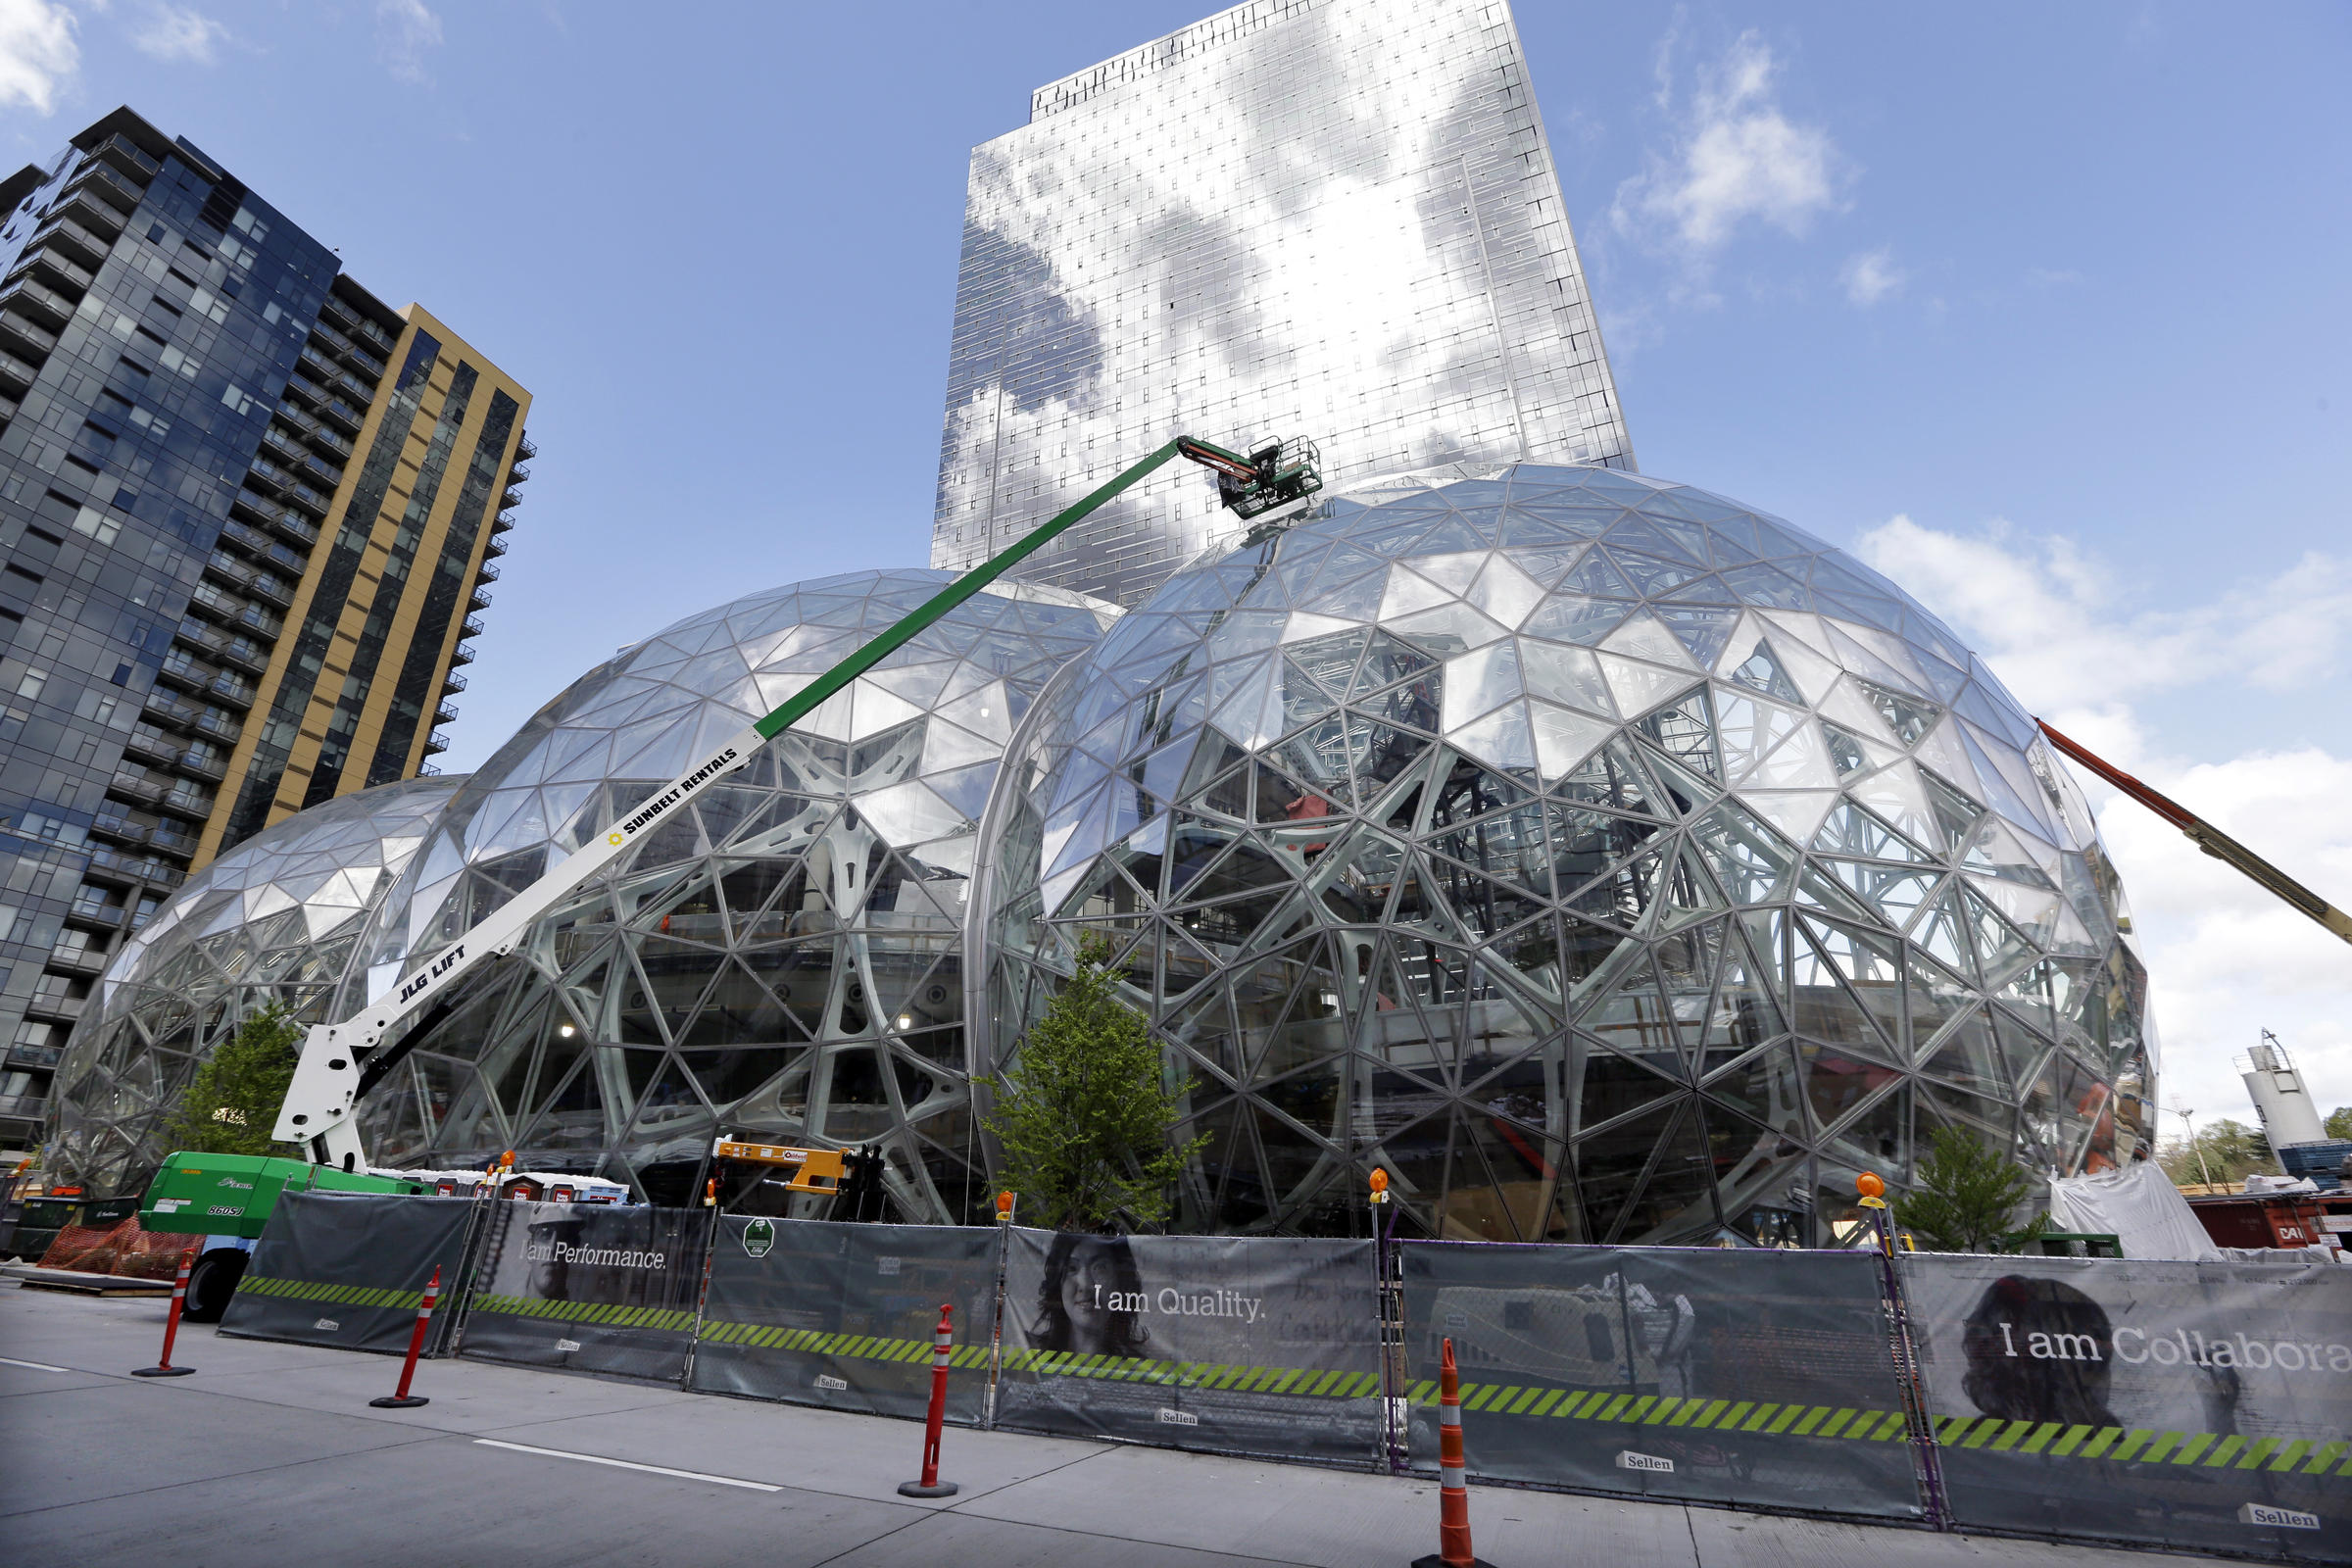 Gary Taking a Shot at New Amazon HQ